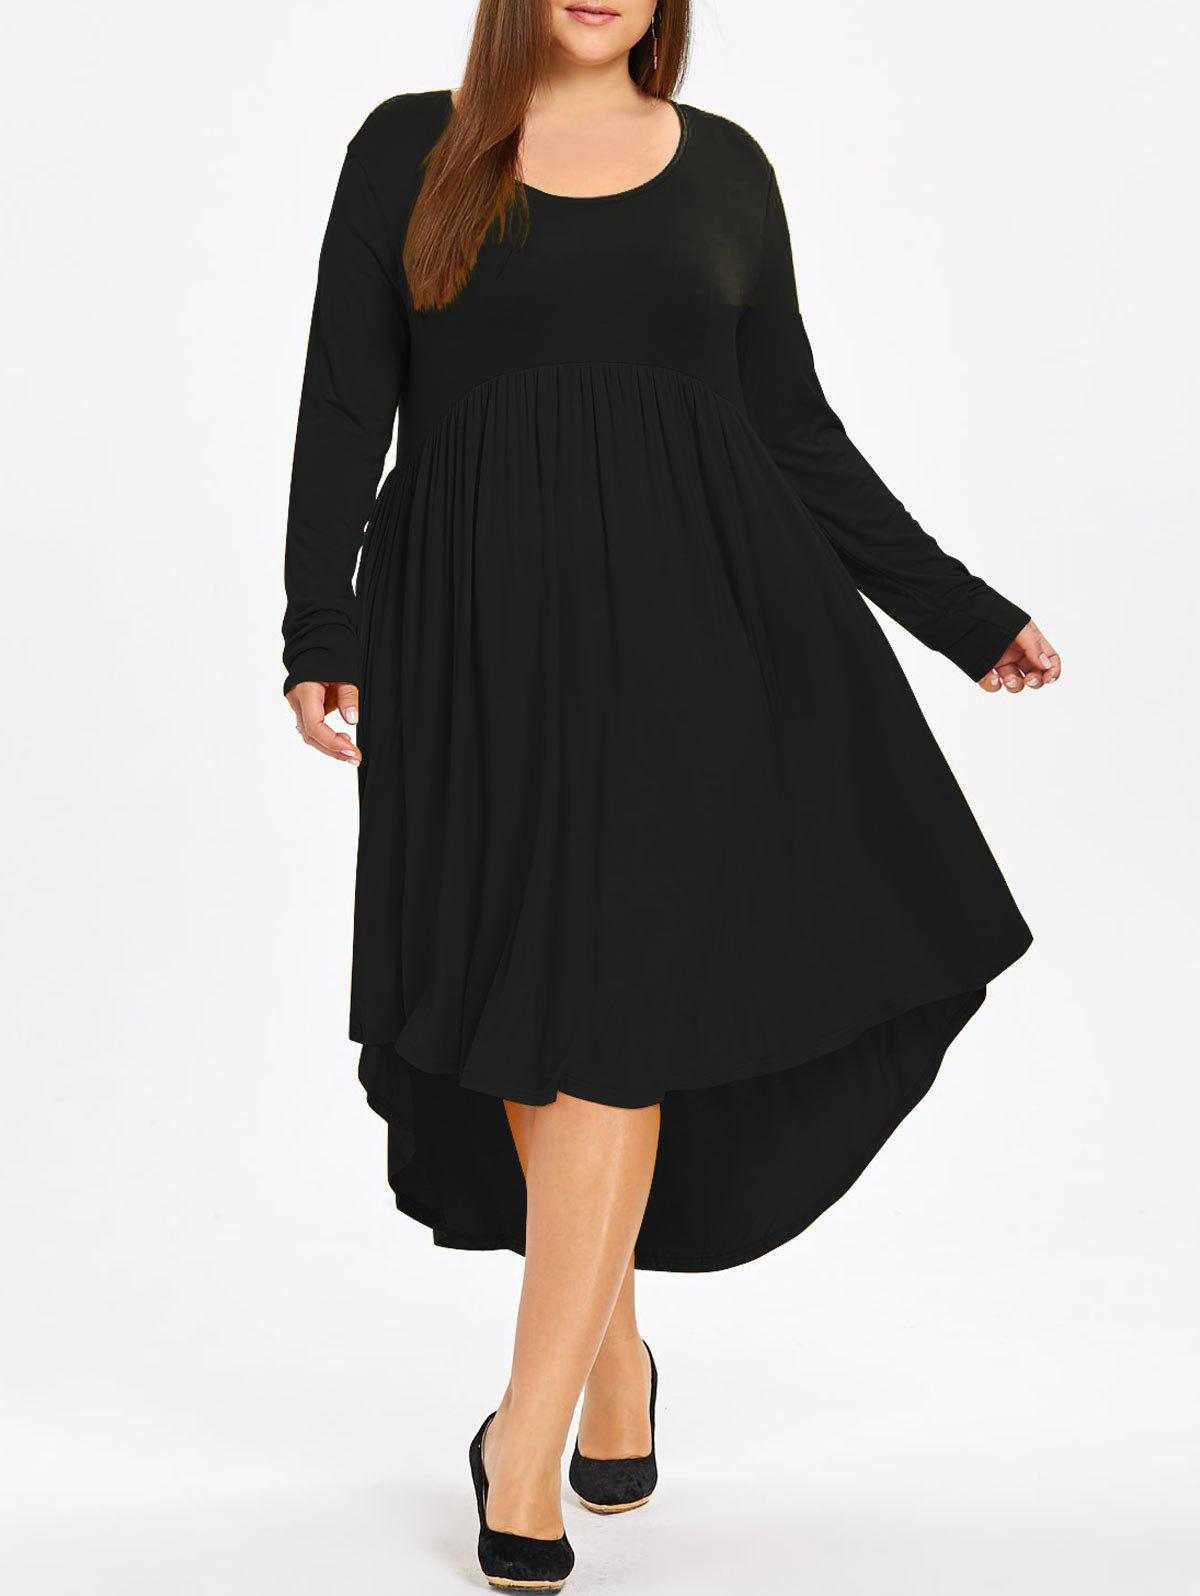 Plus Size High Low Midi Swing Dress plus size high low floral embroidered dress